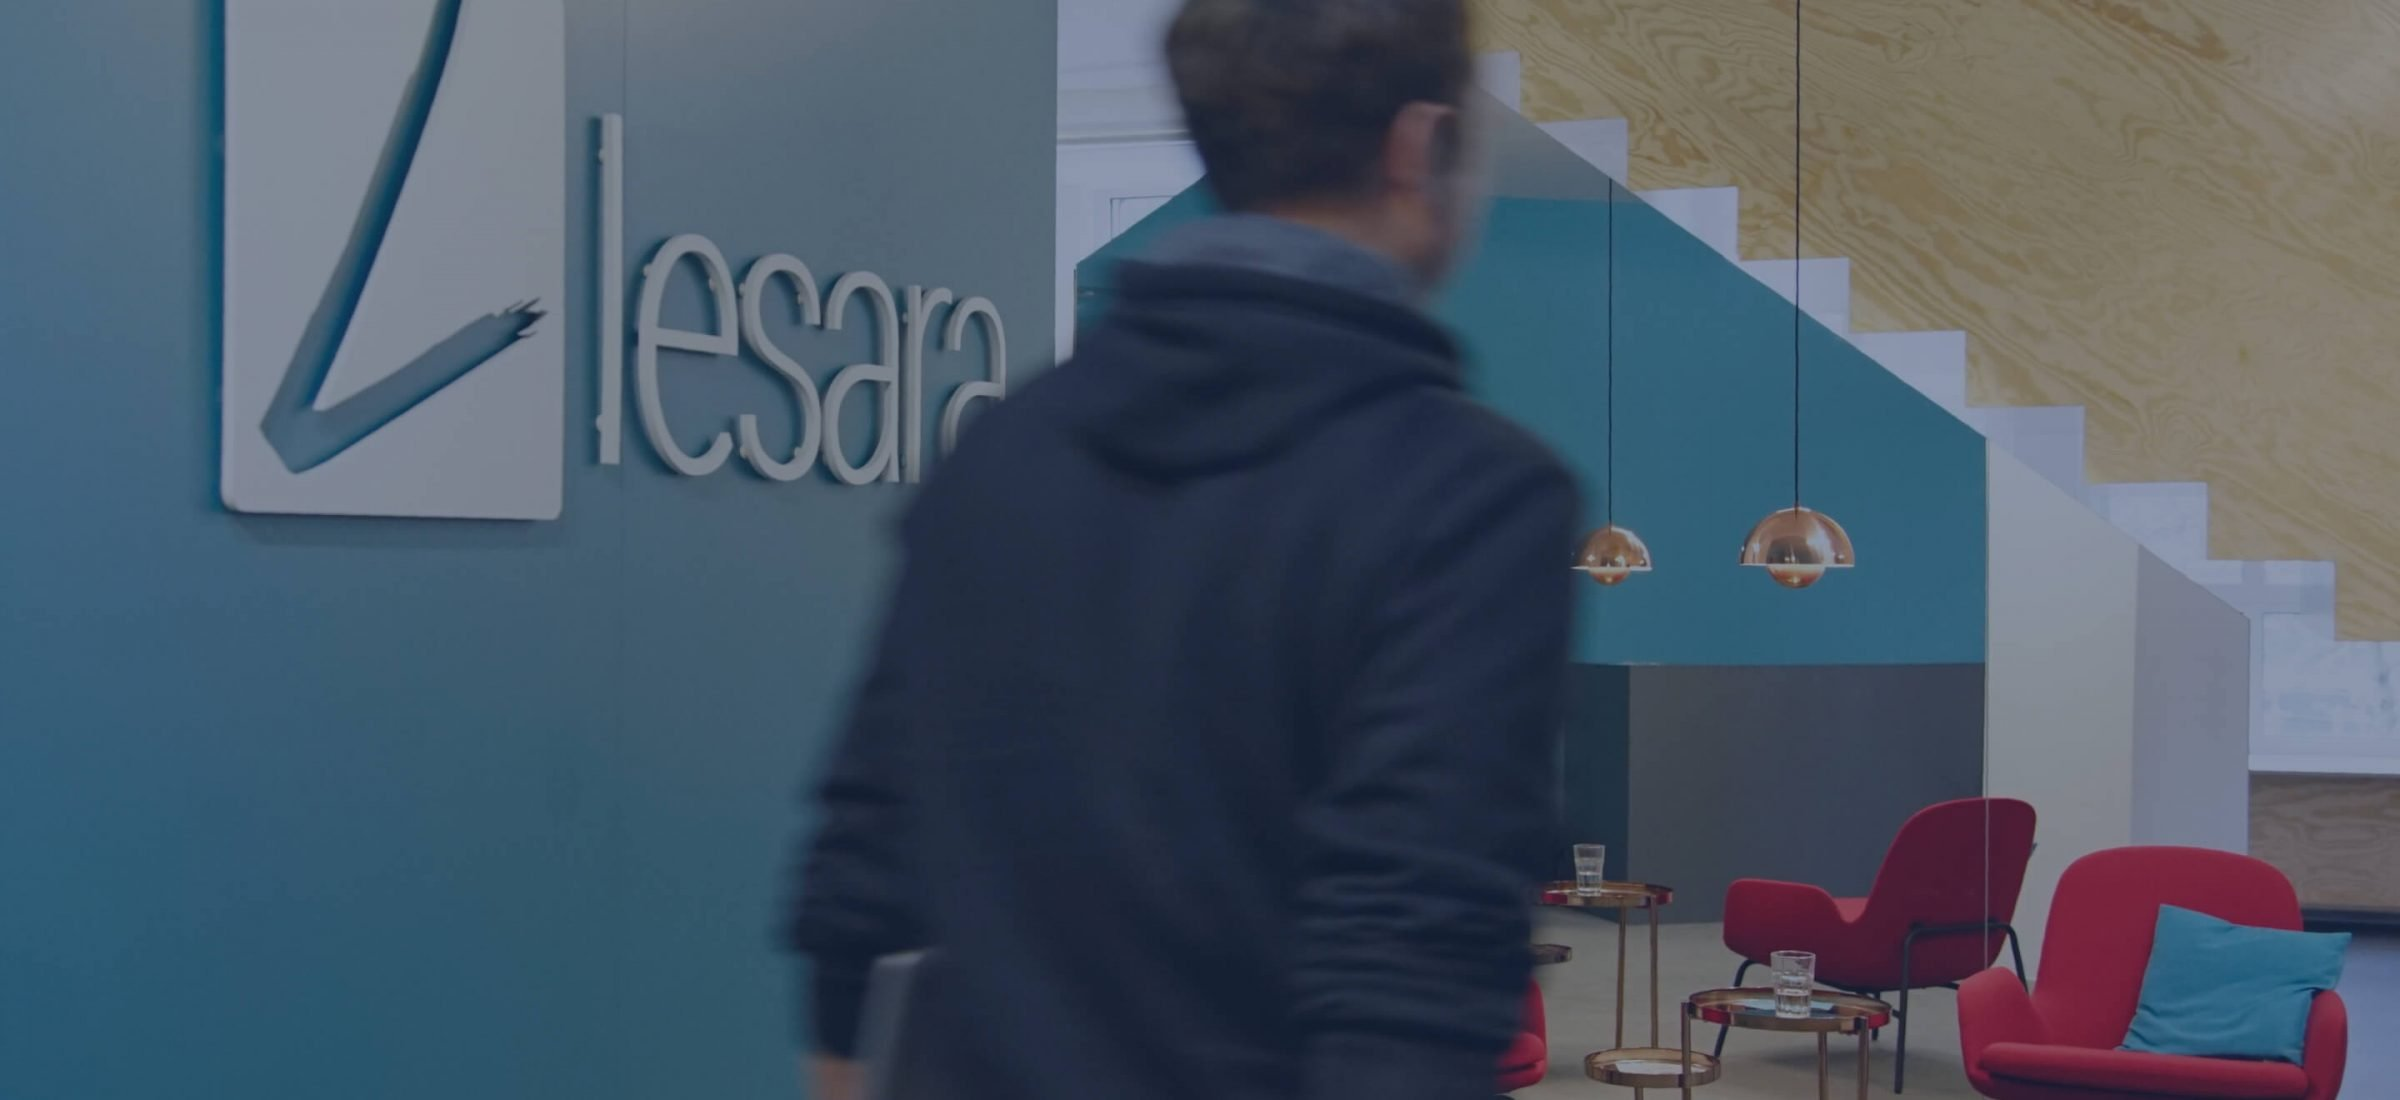 How Lesara improved productivity and efficiency using Airtame's wireless technology